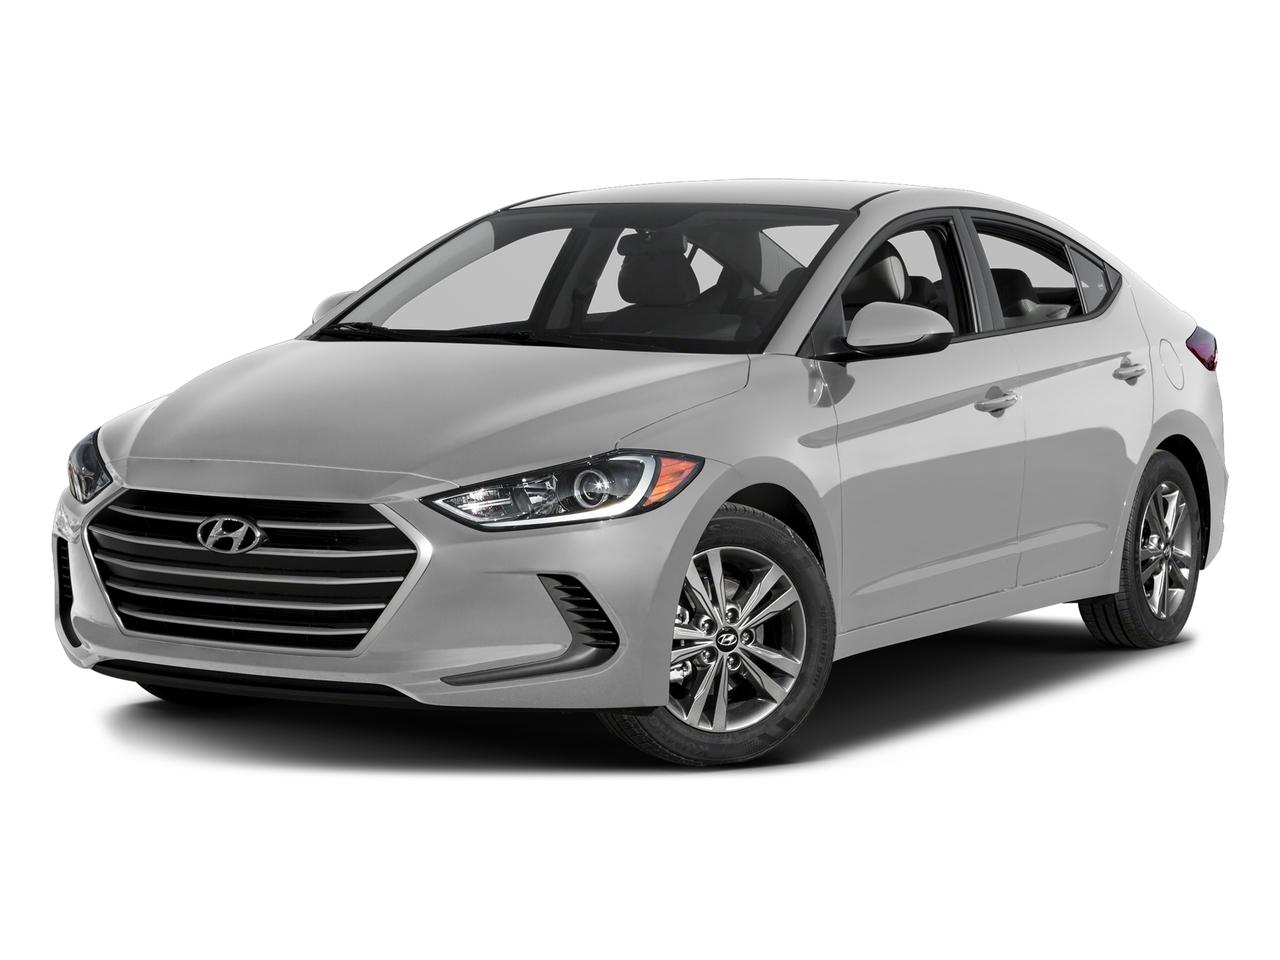 2017 Hyundai Elantra Vehicle Photo in Jenkintown, PA 19046